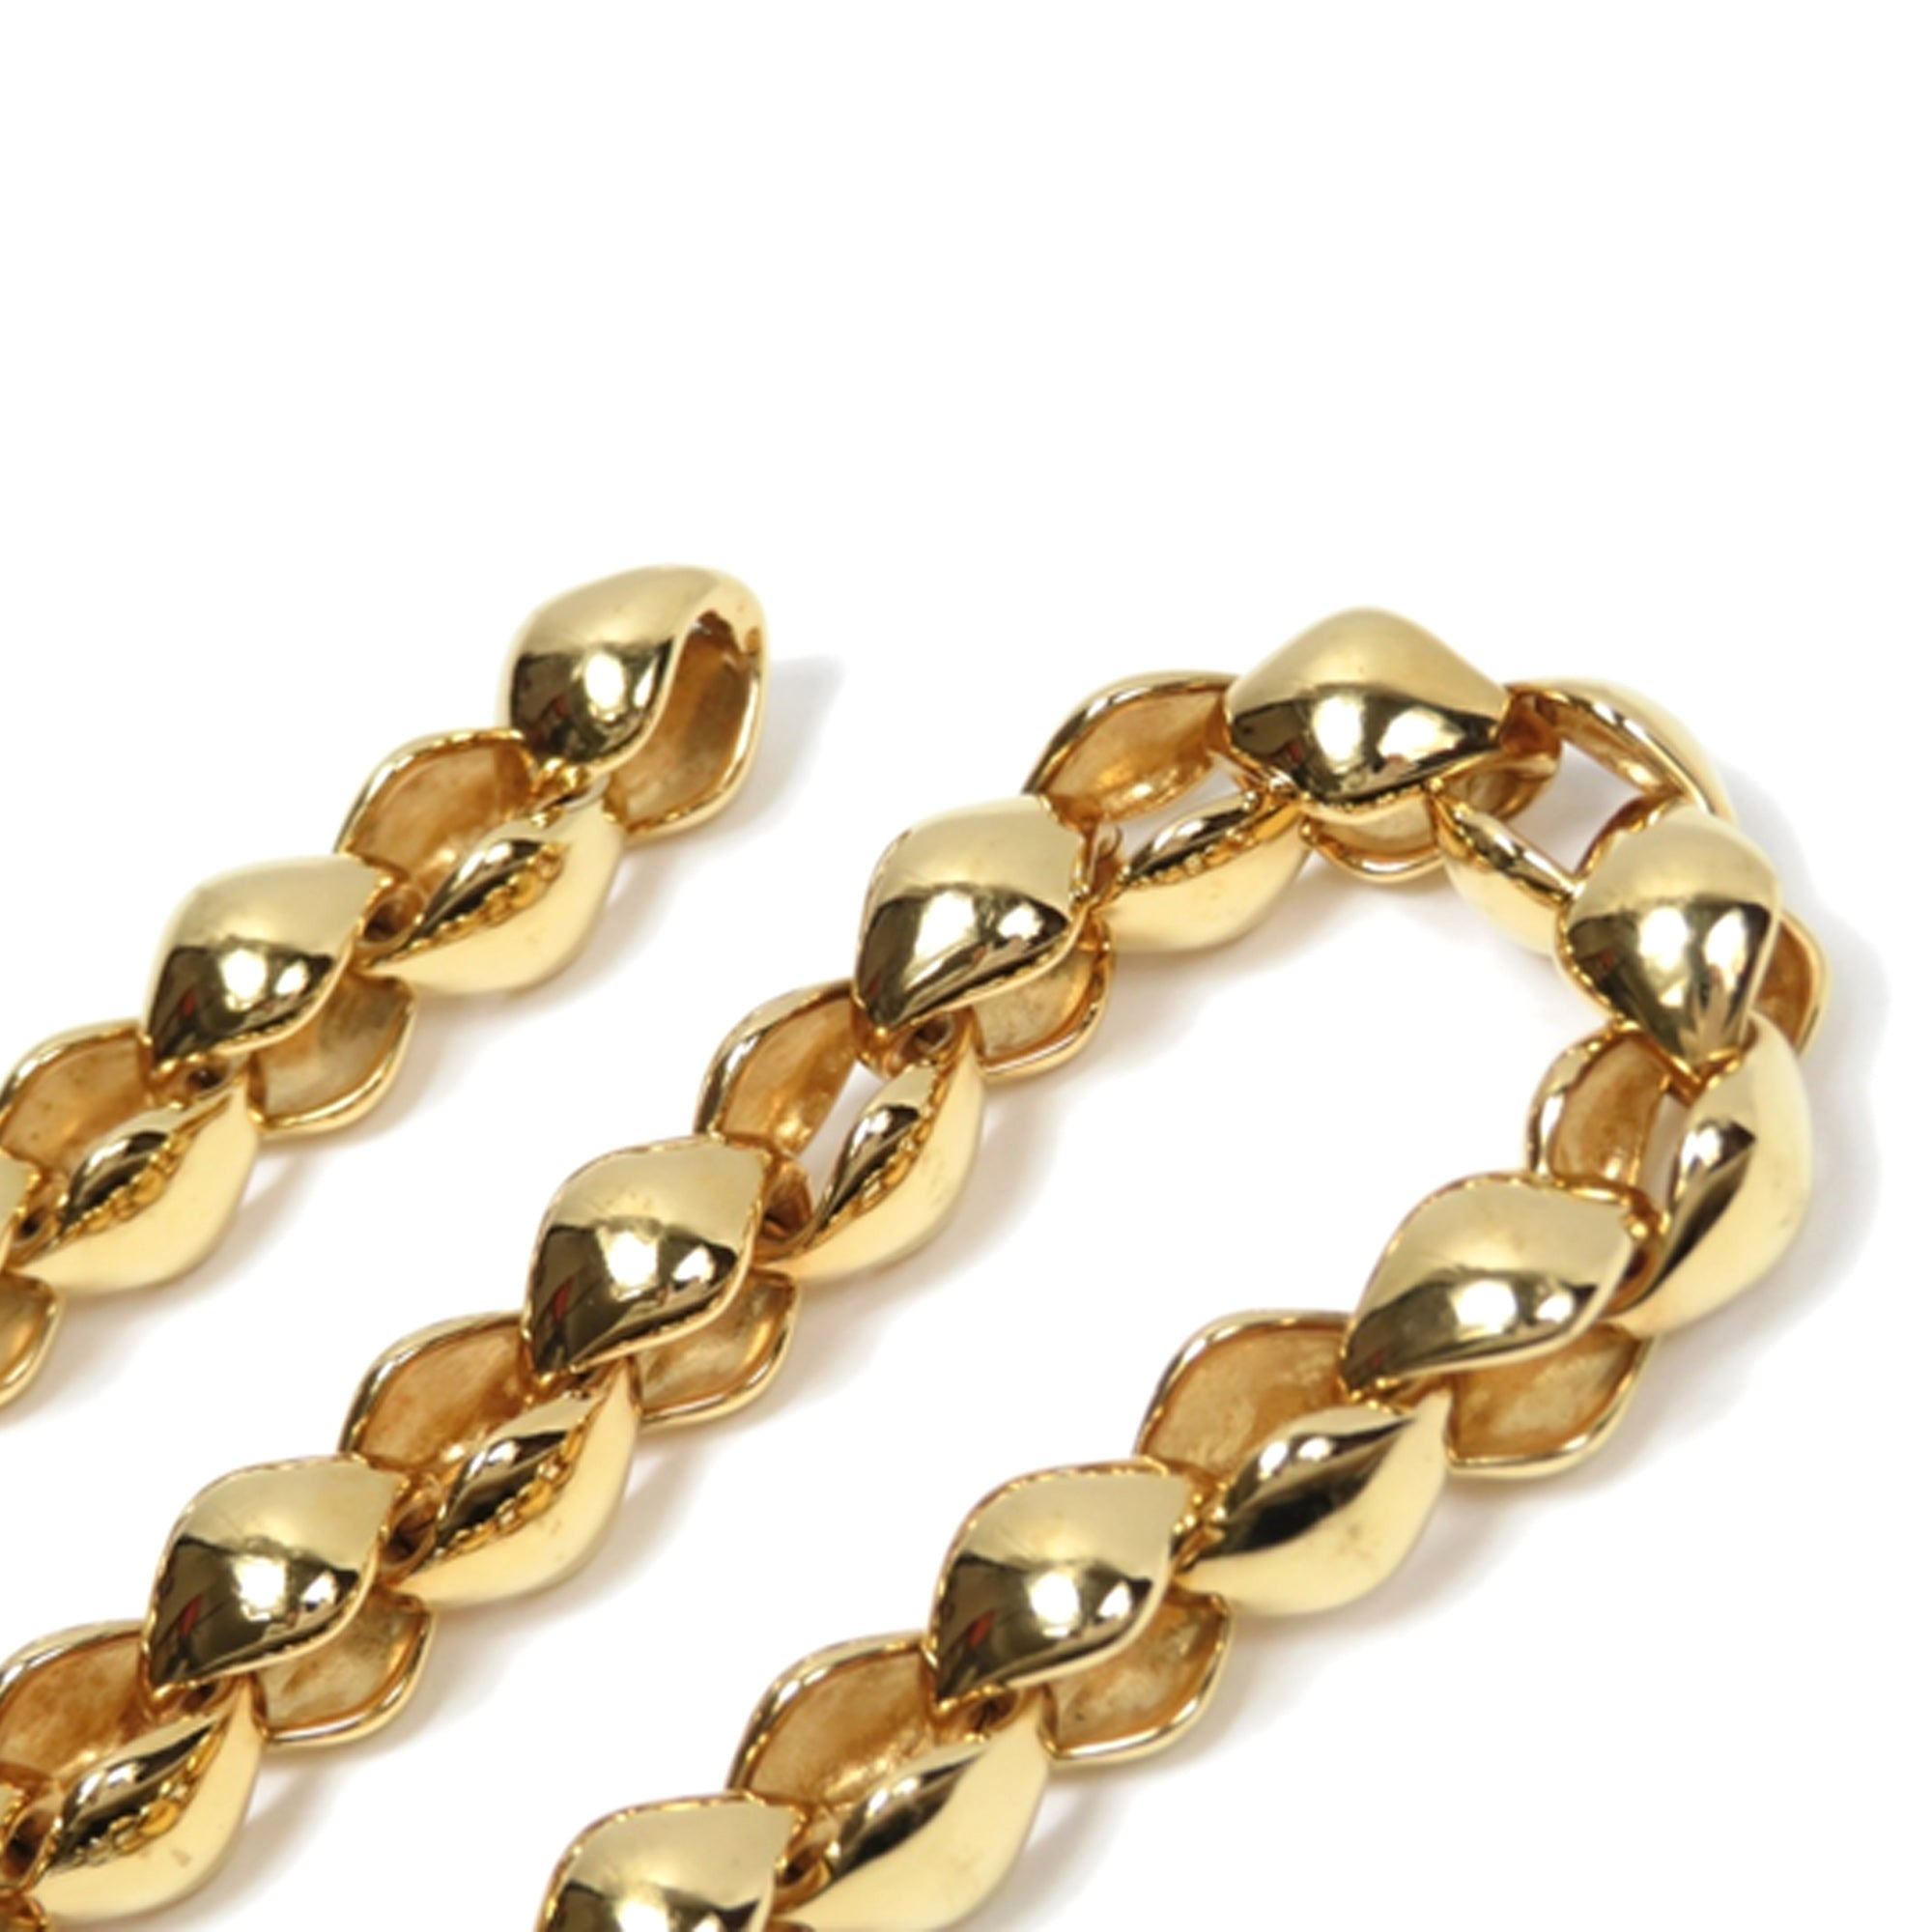 Louis Vuitton Gold Gold-Toned Chain Necklace